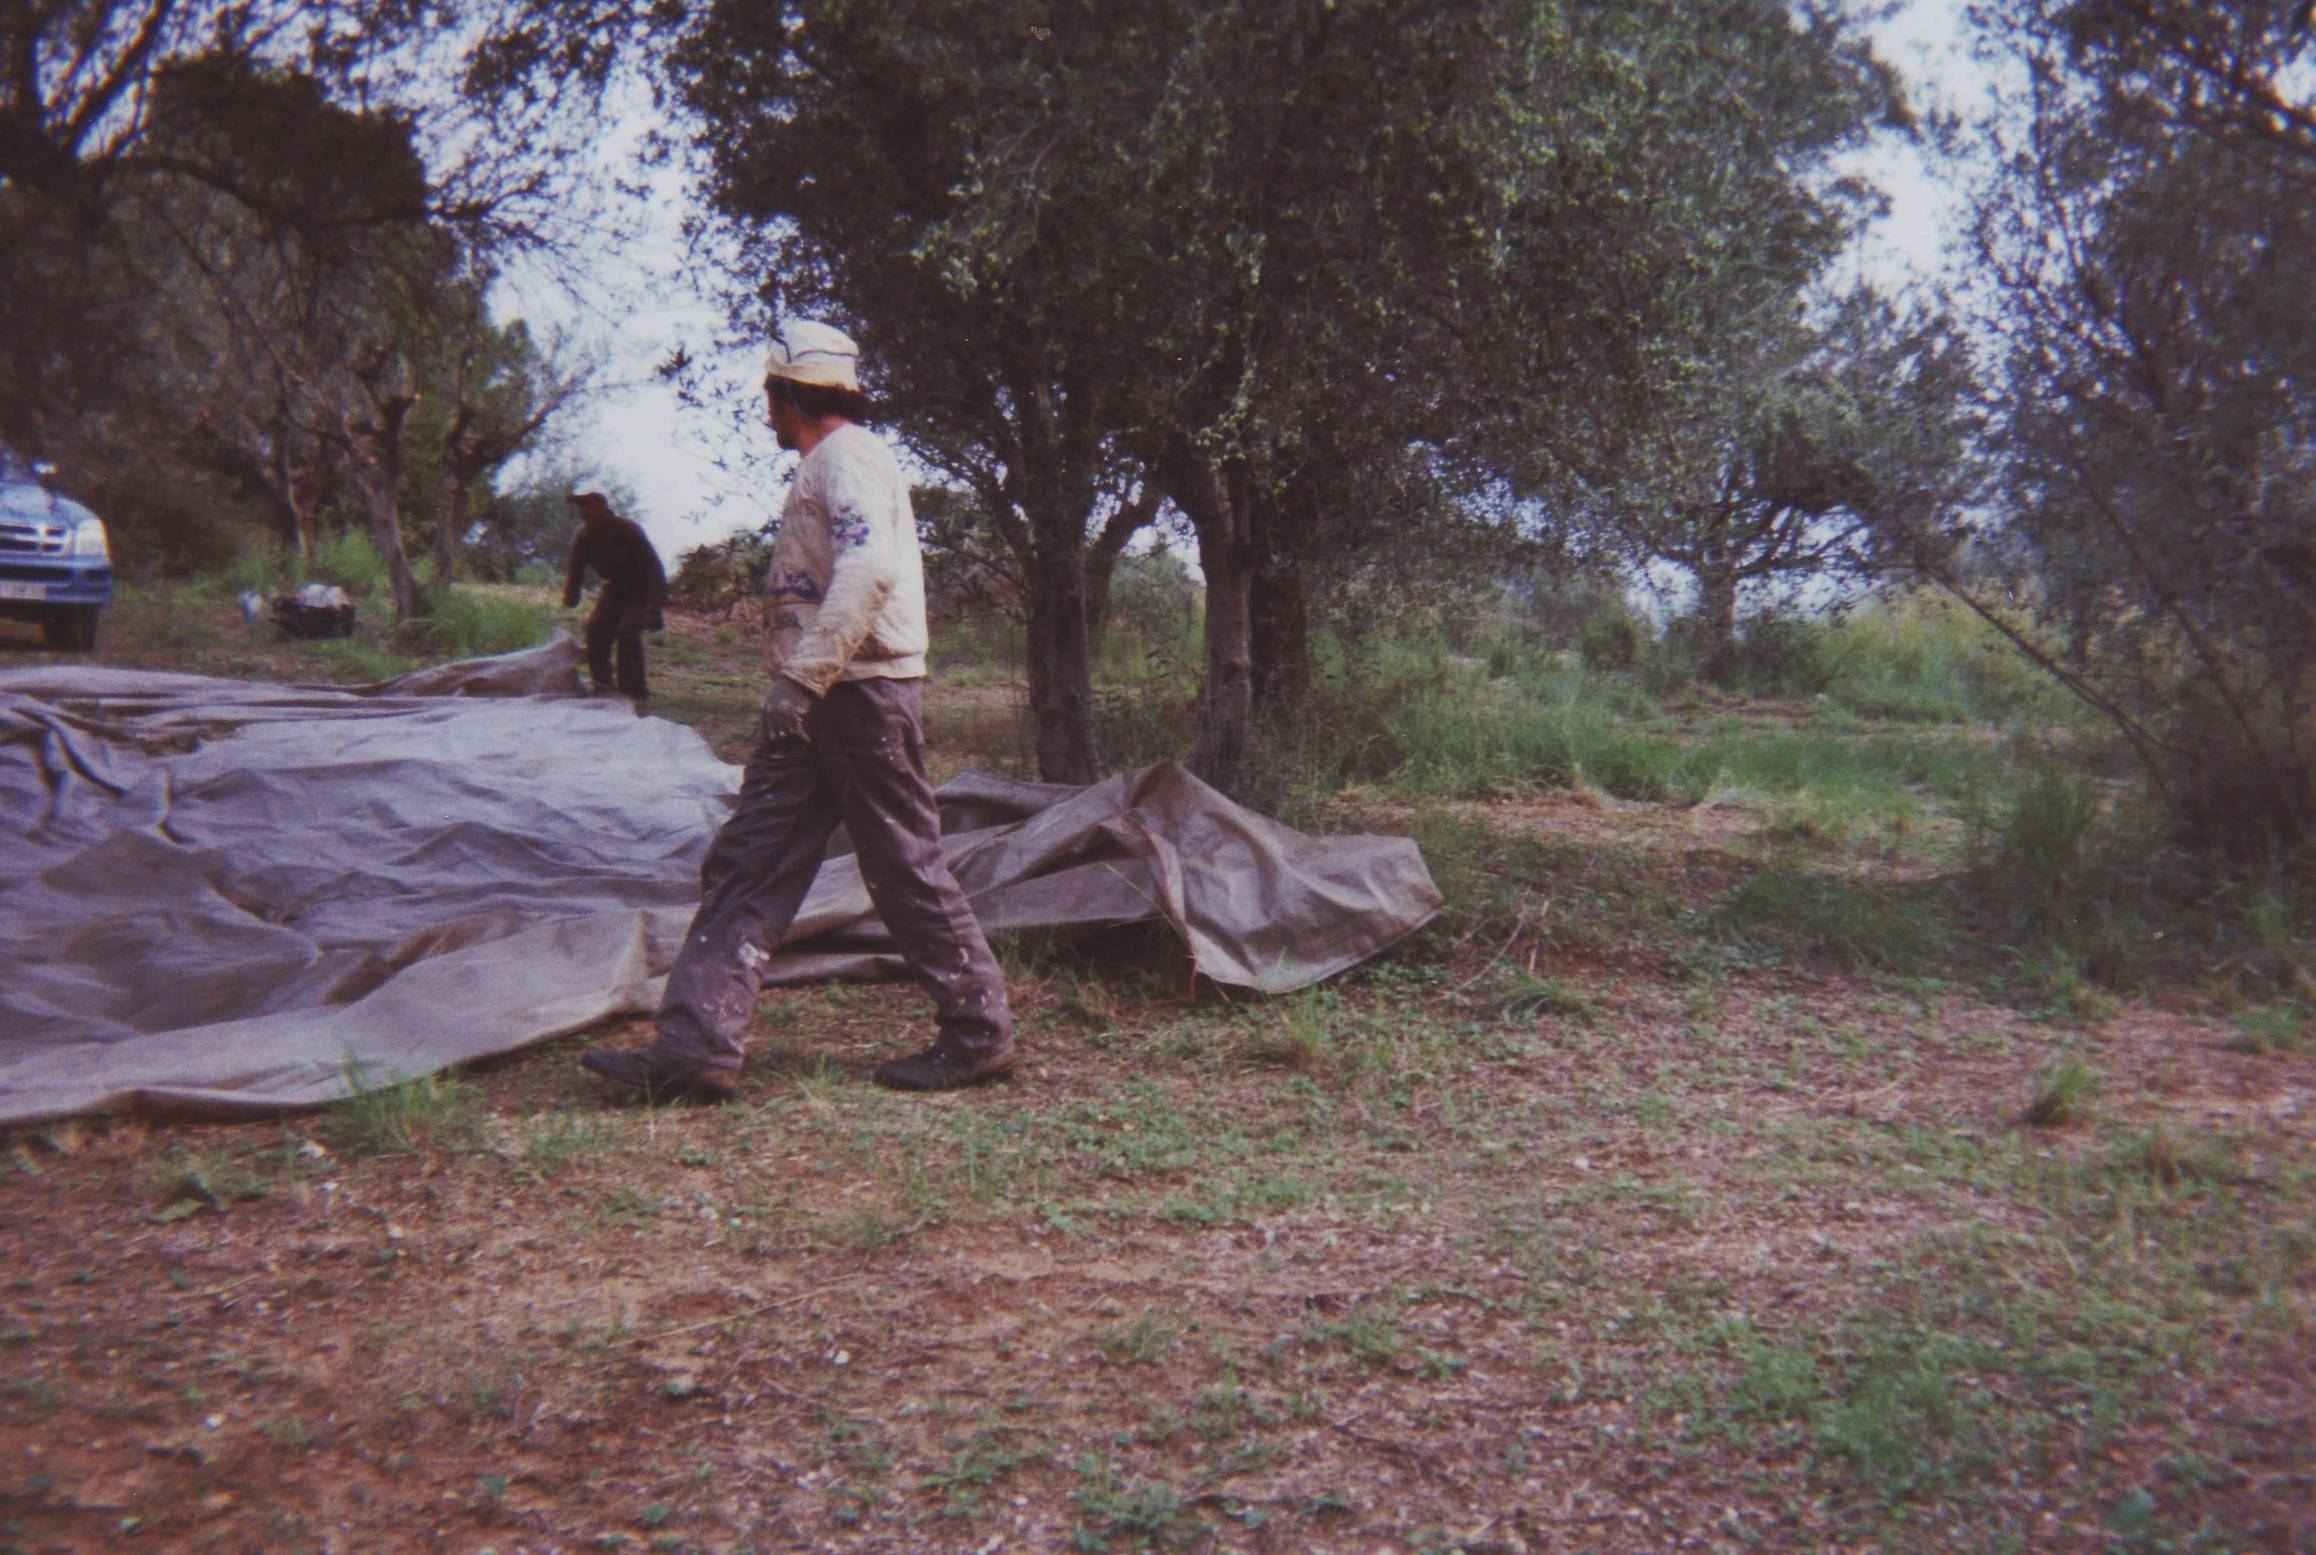 Workers spreading nets under olive trees